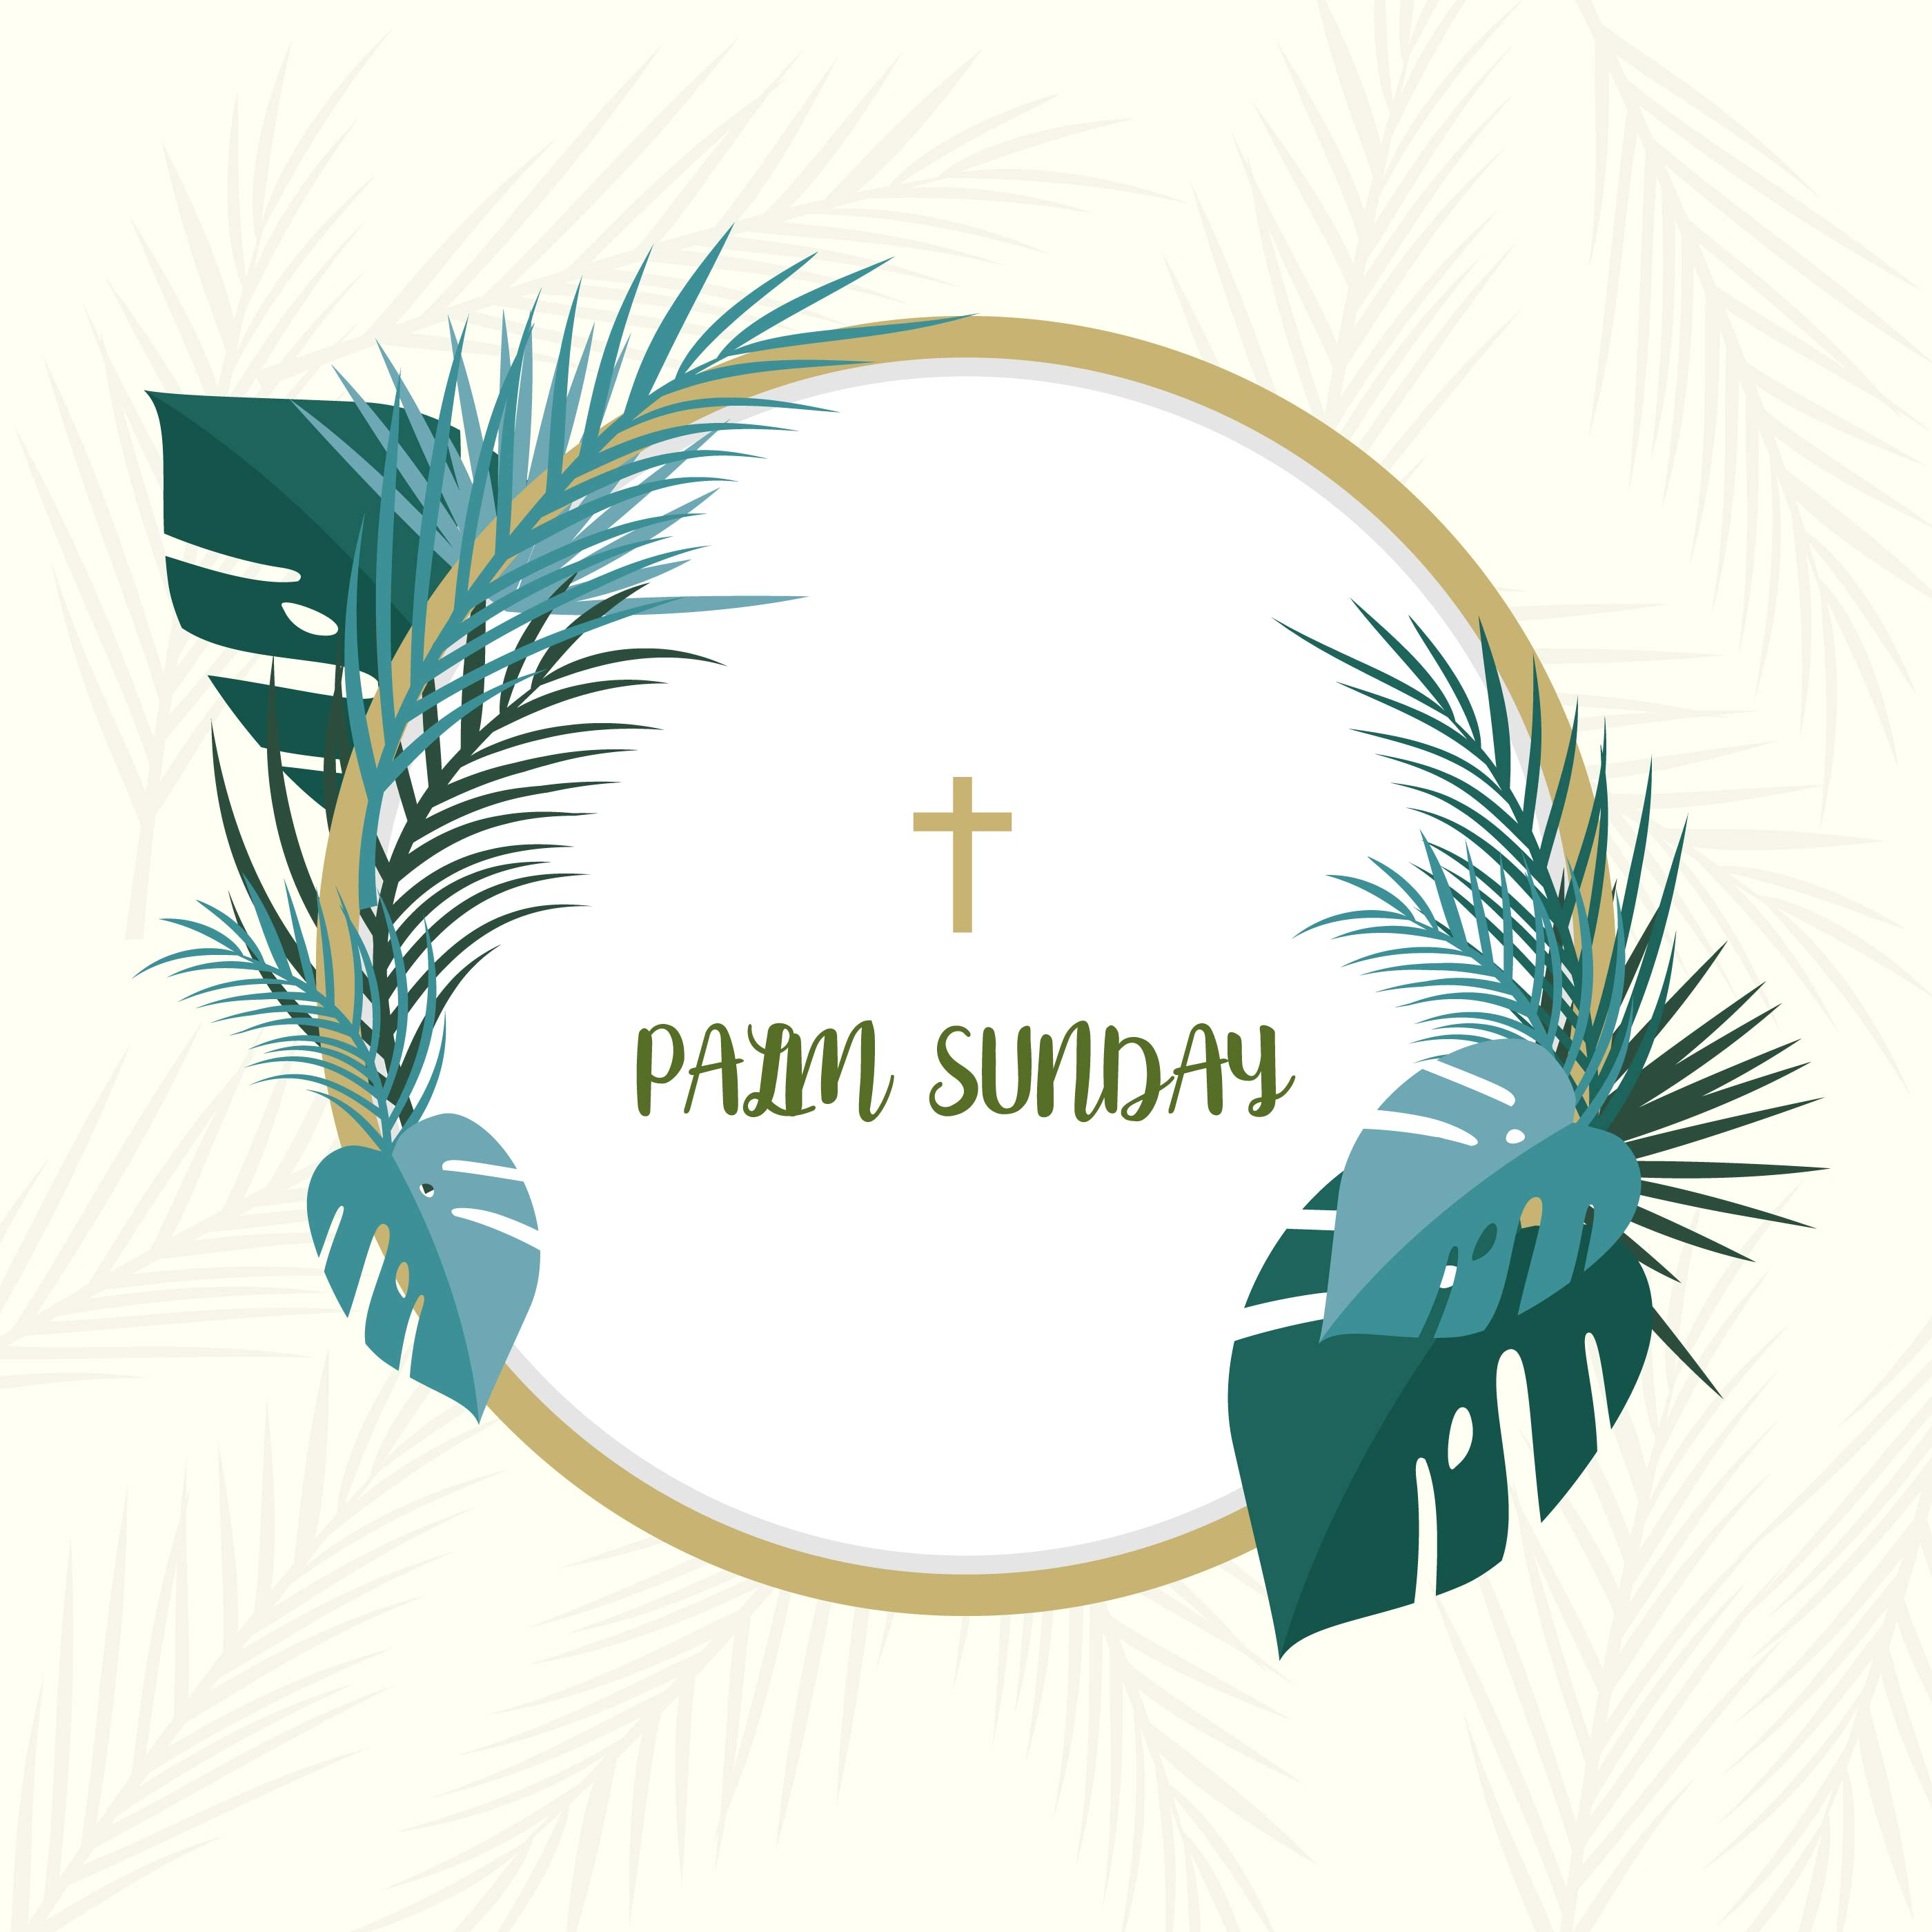 Flat Palm Sunday Vector Background - Download Free Vectors ...